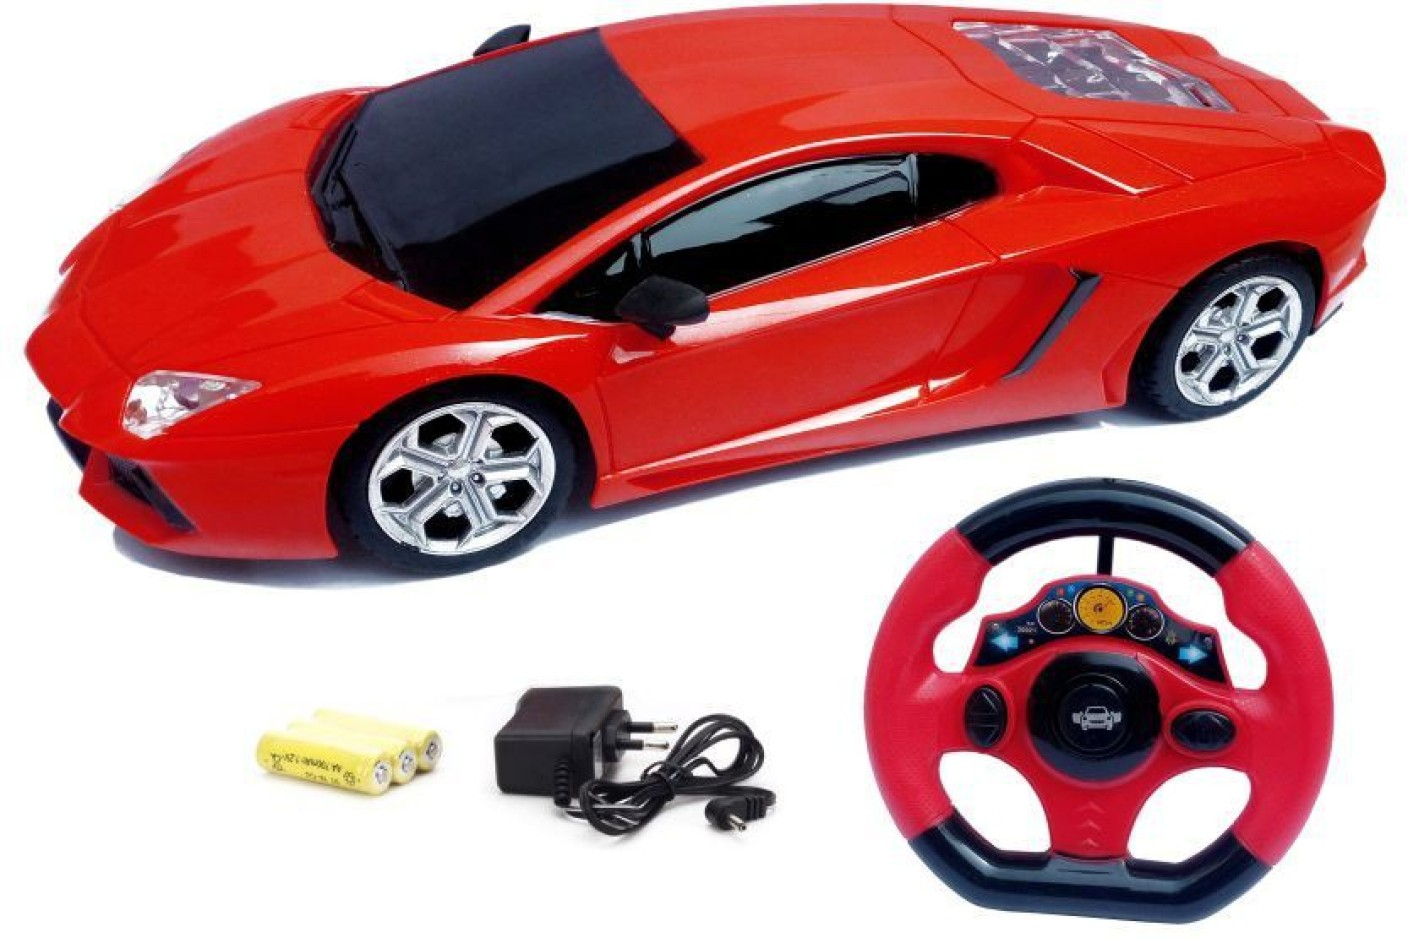 The Best Rc Cars To Buy